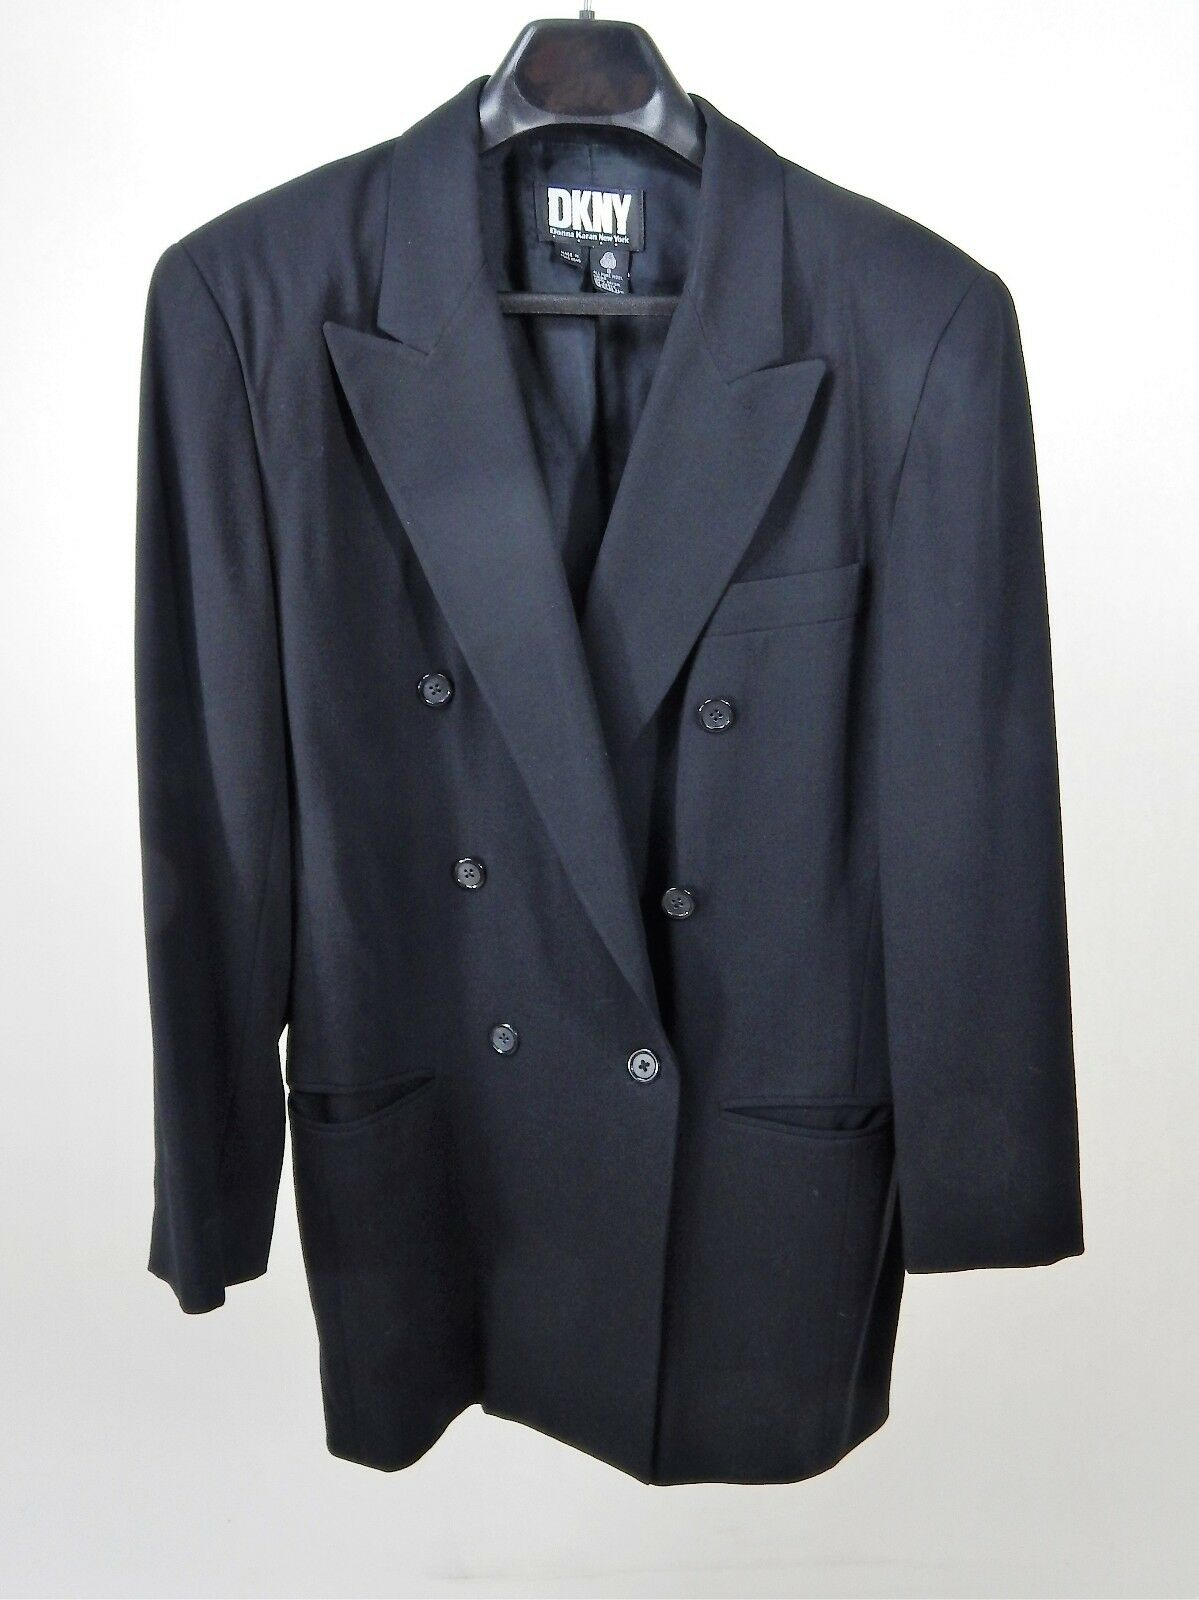 DKNY 100% Wool Double Breasted Long Blazer Lined Size 8